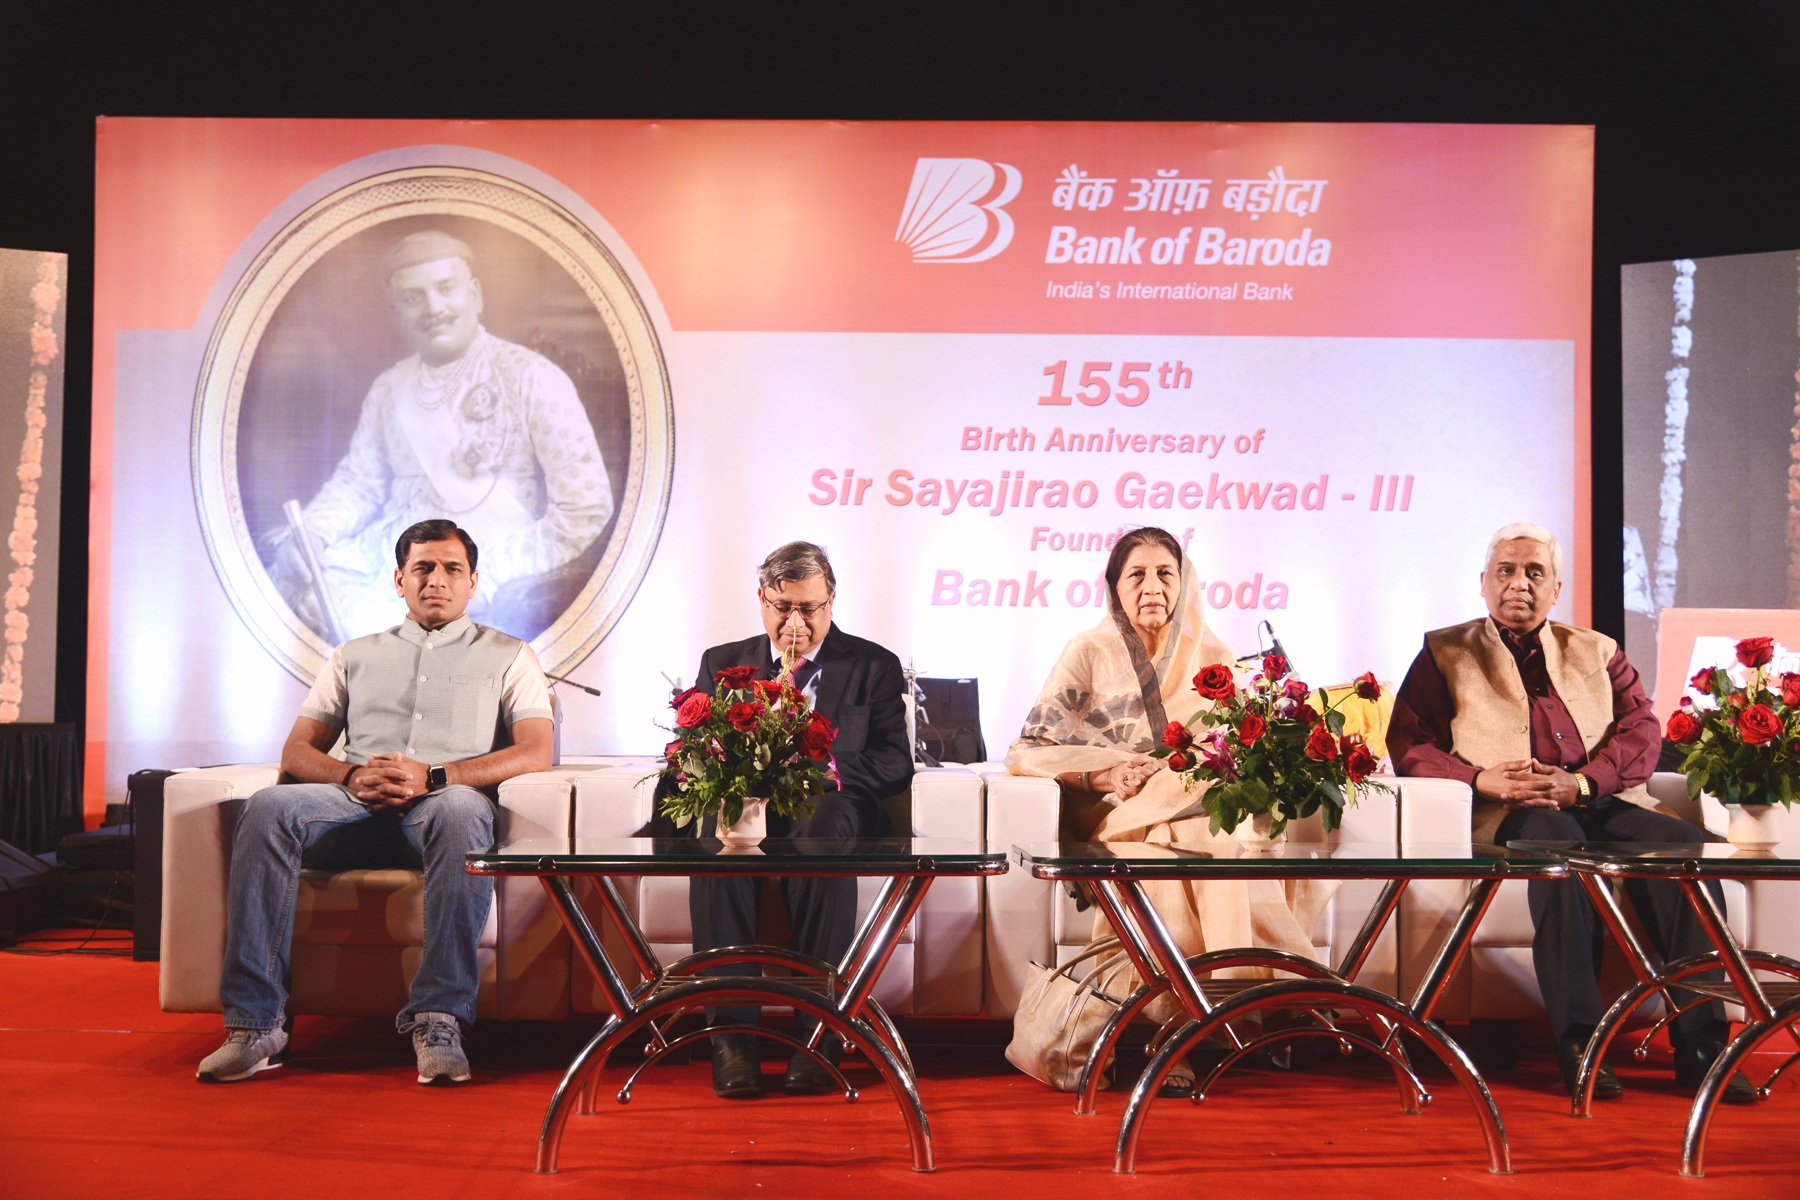 Bank of Baroda celebrated 155th birth anniversary of it's founder Shrimant Maharaj Sir Sayajirao Gaekwad-III